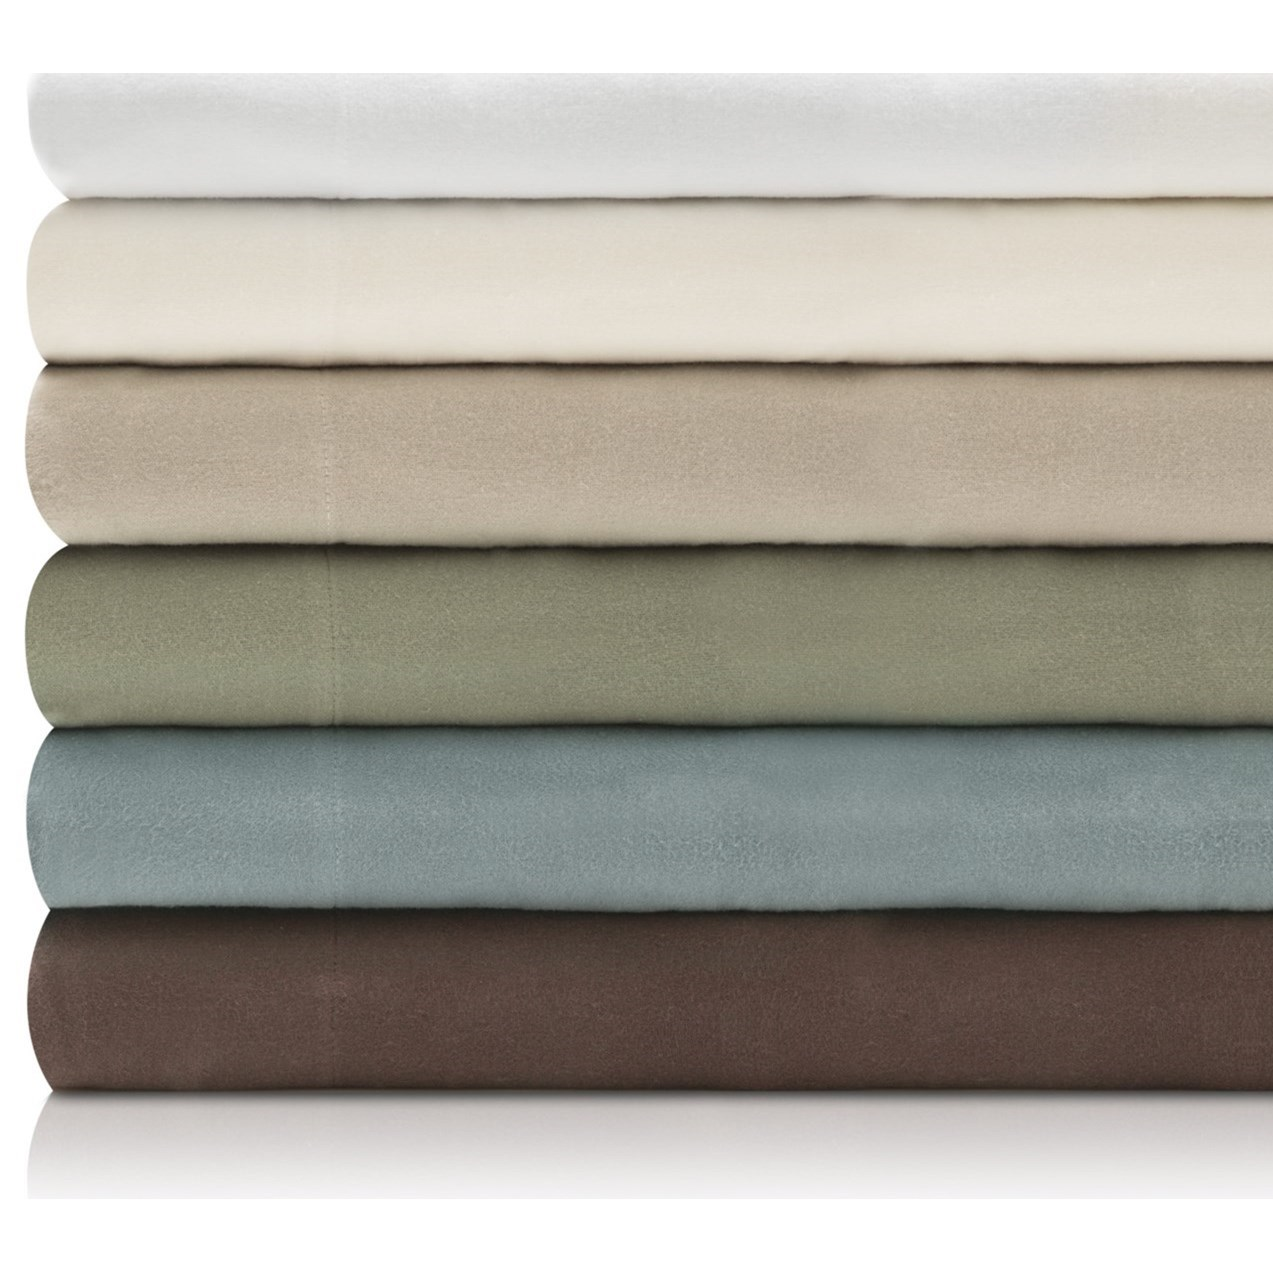 Malouf Portuguese Flannel Cal King Woven™ Portuguese Flannel Sheet Set - Item Number: WO19CKOAFS